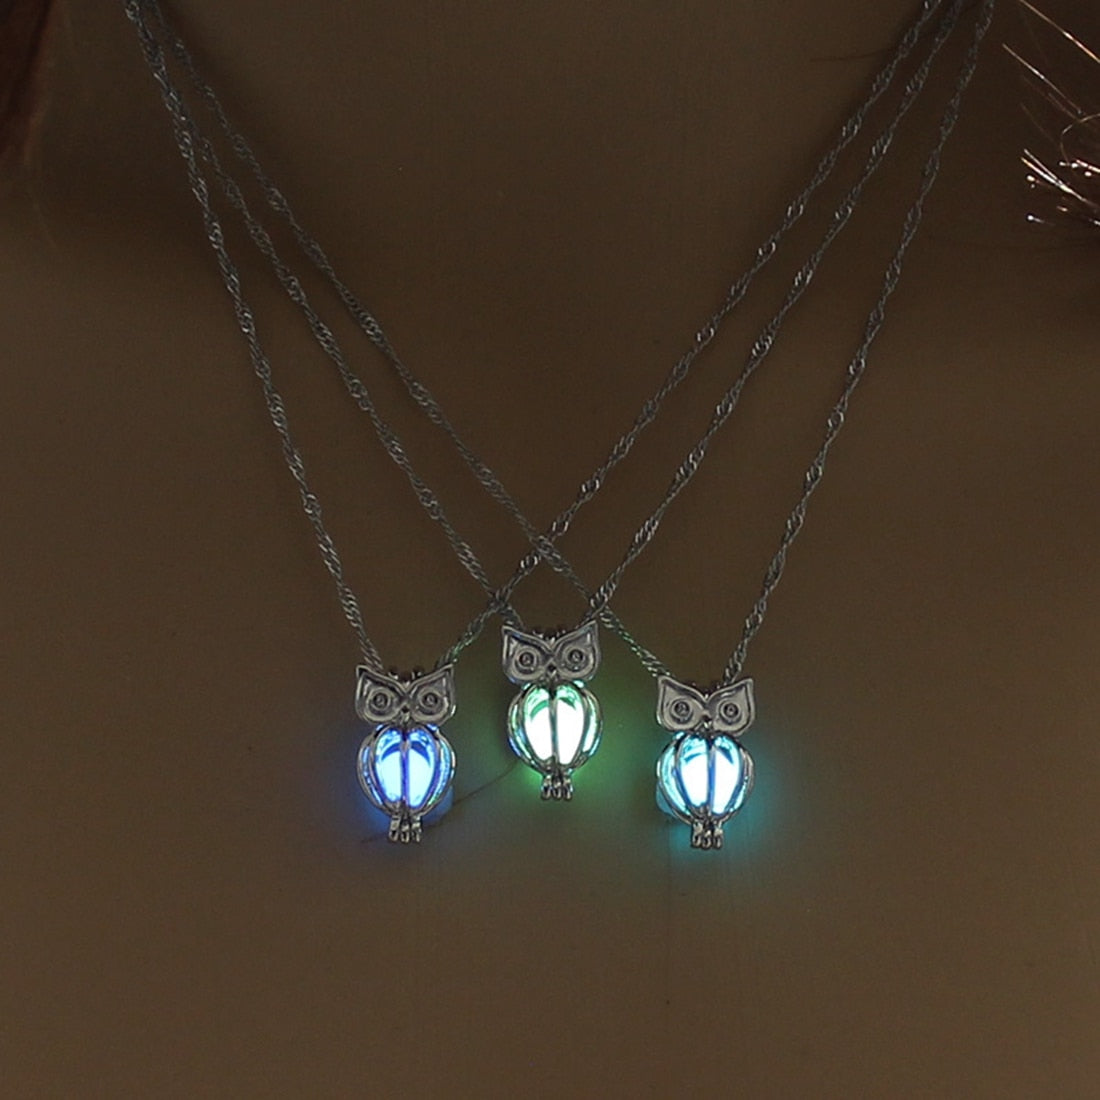 Glowing Owl Necklace - Earth Ark Boutique